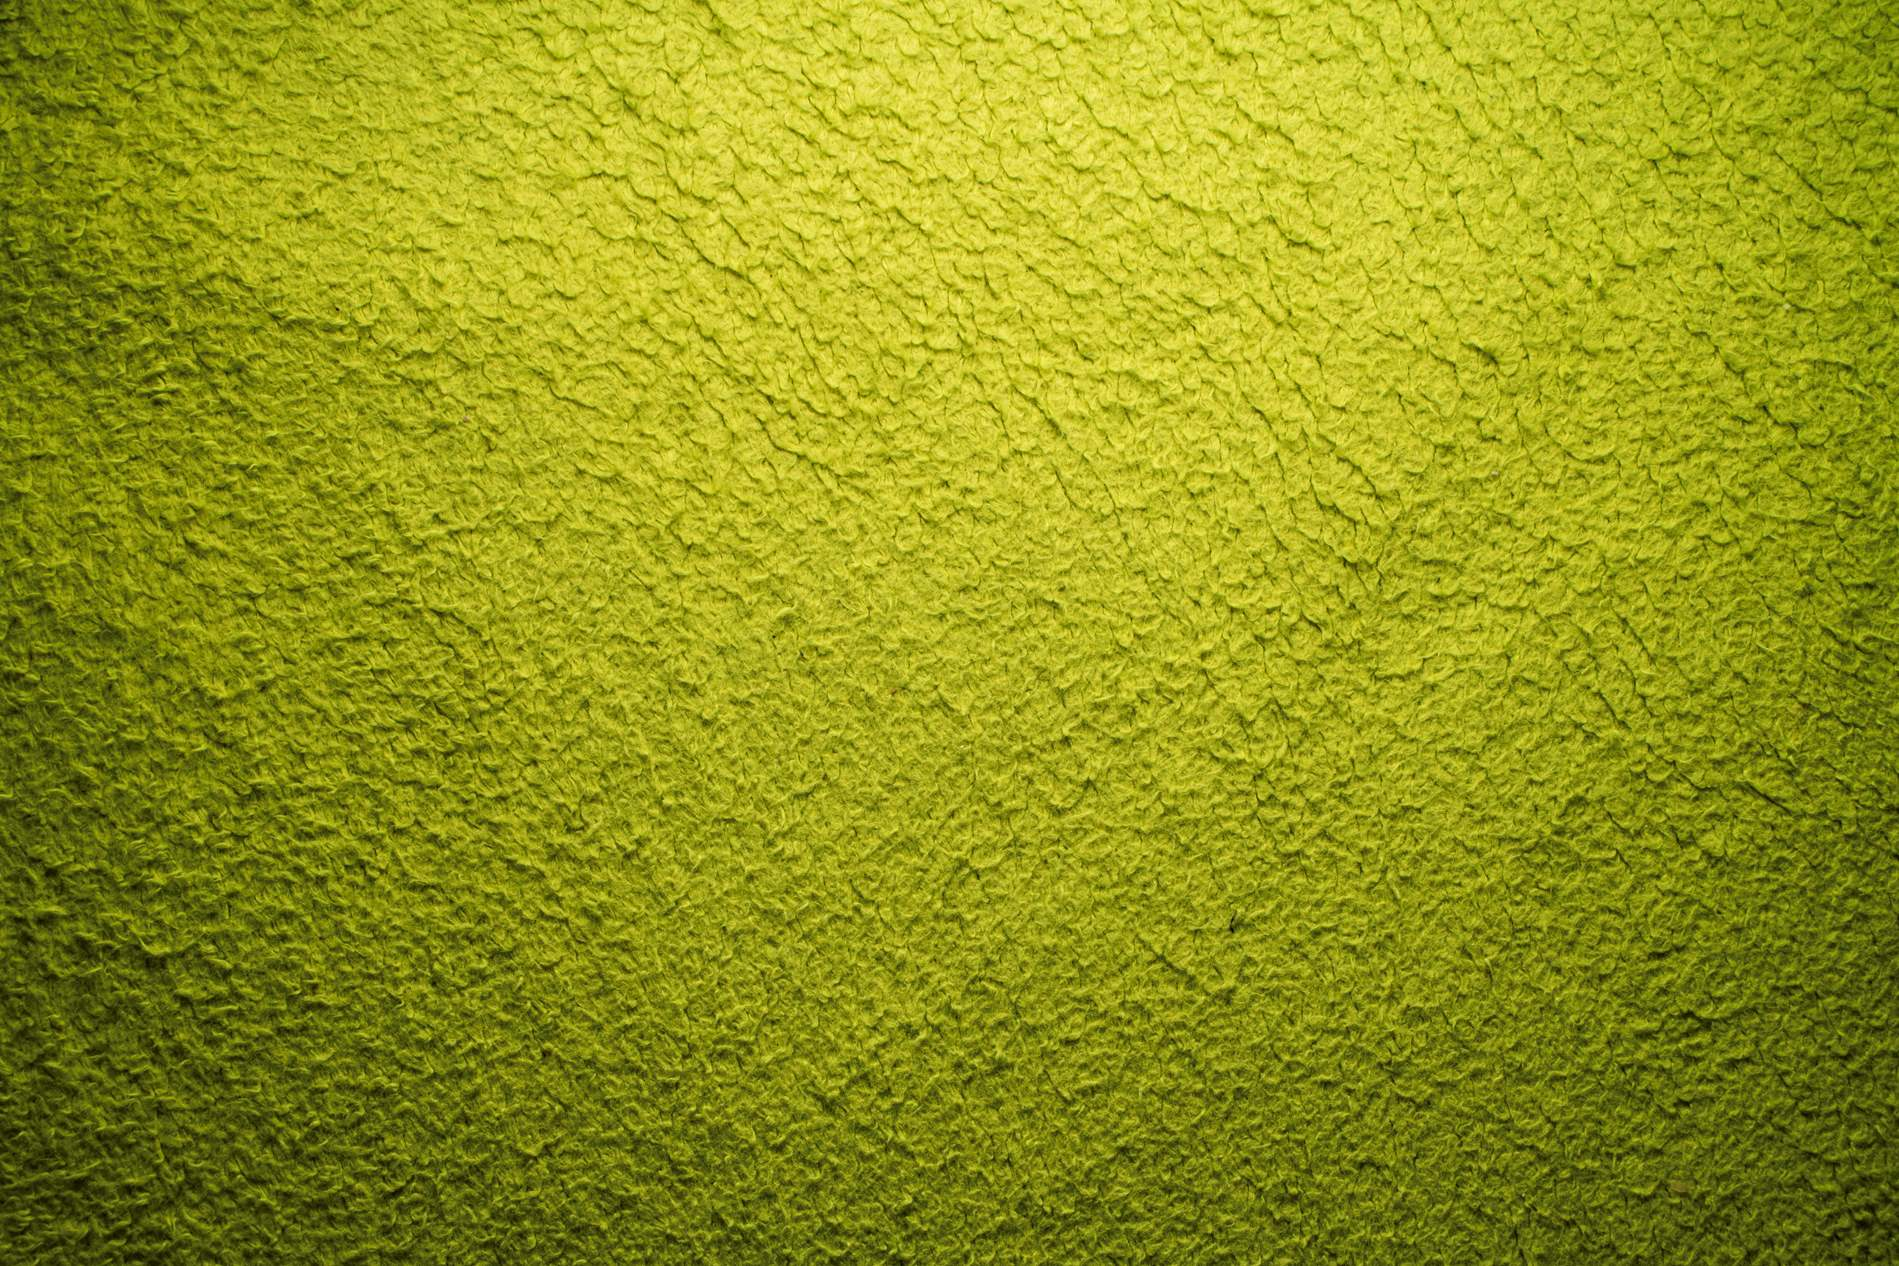 Green Soft Fabric Background Texture Photohdx